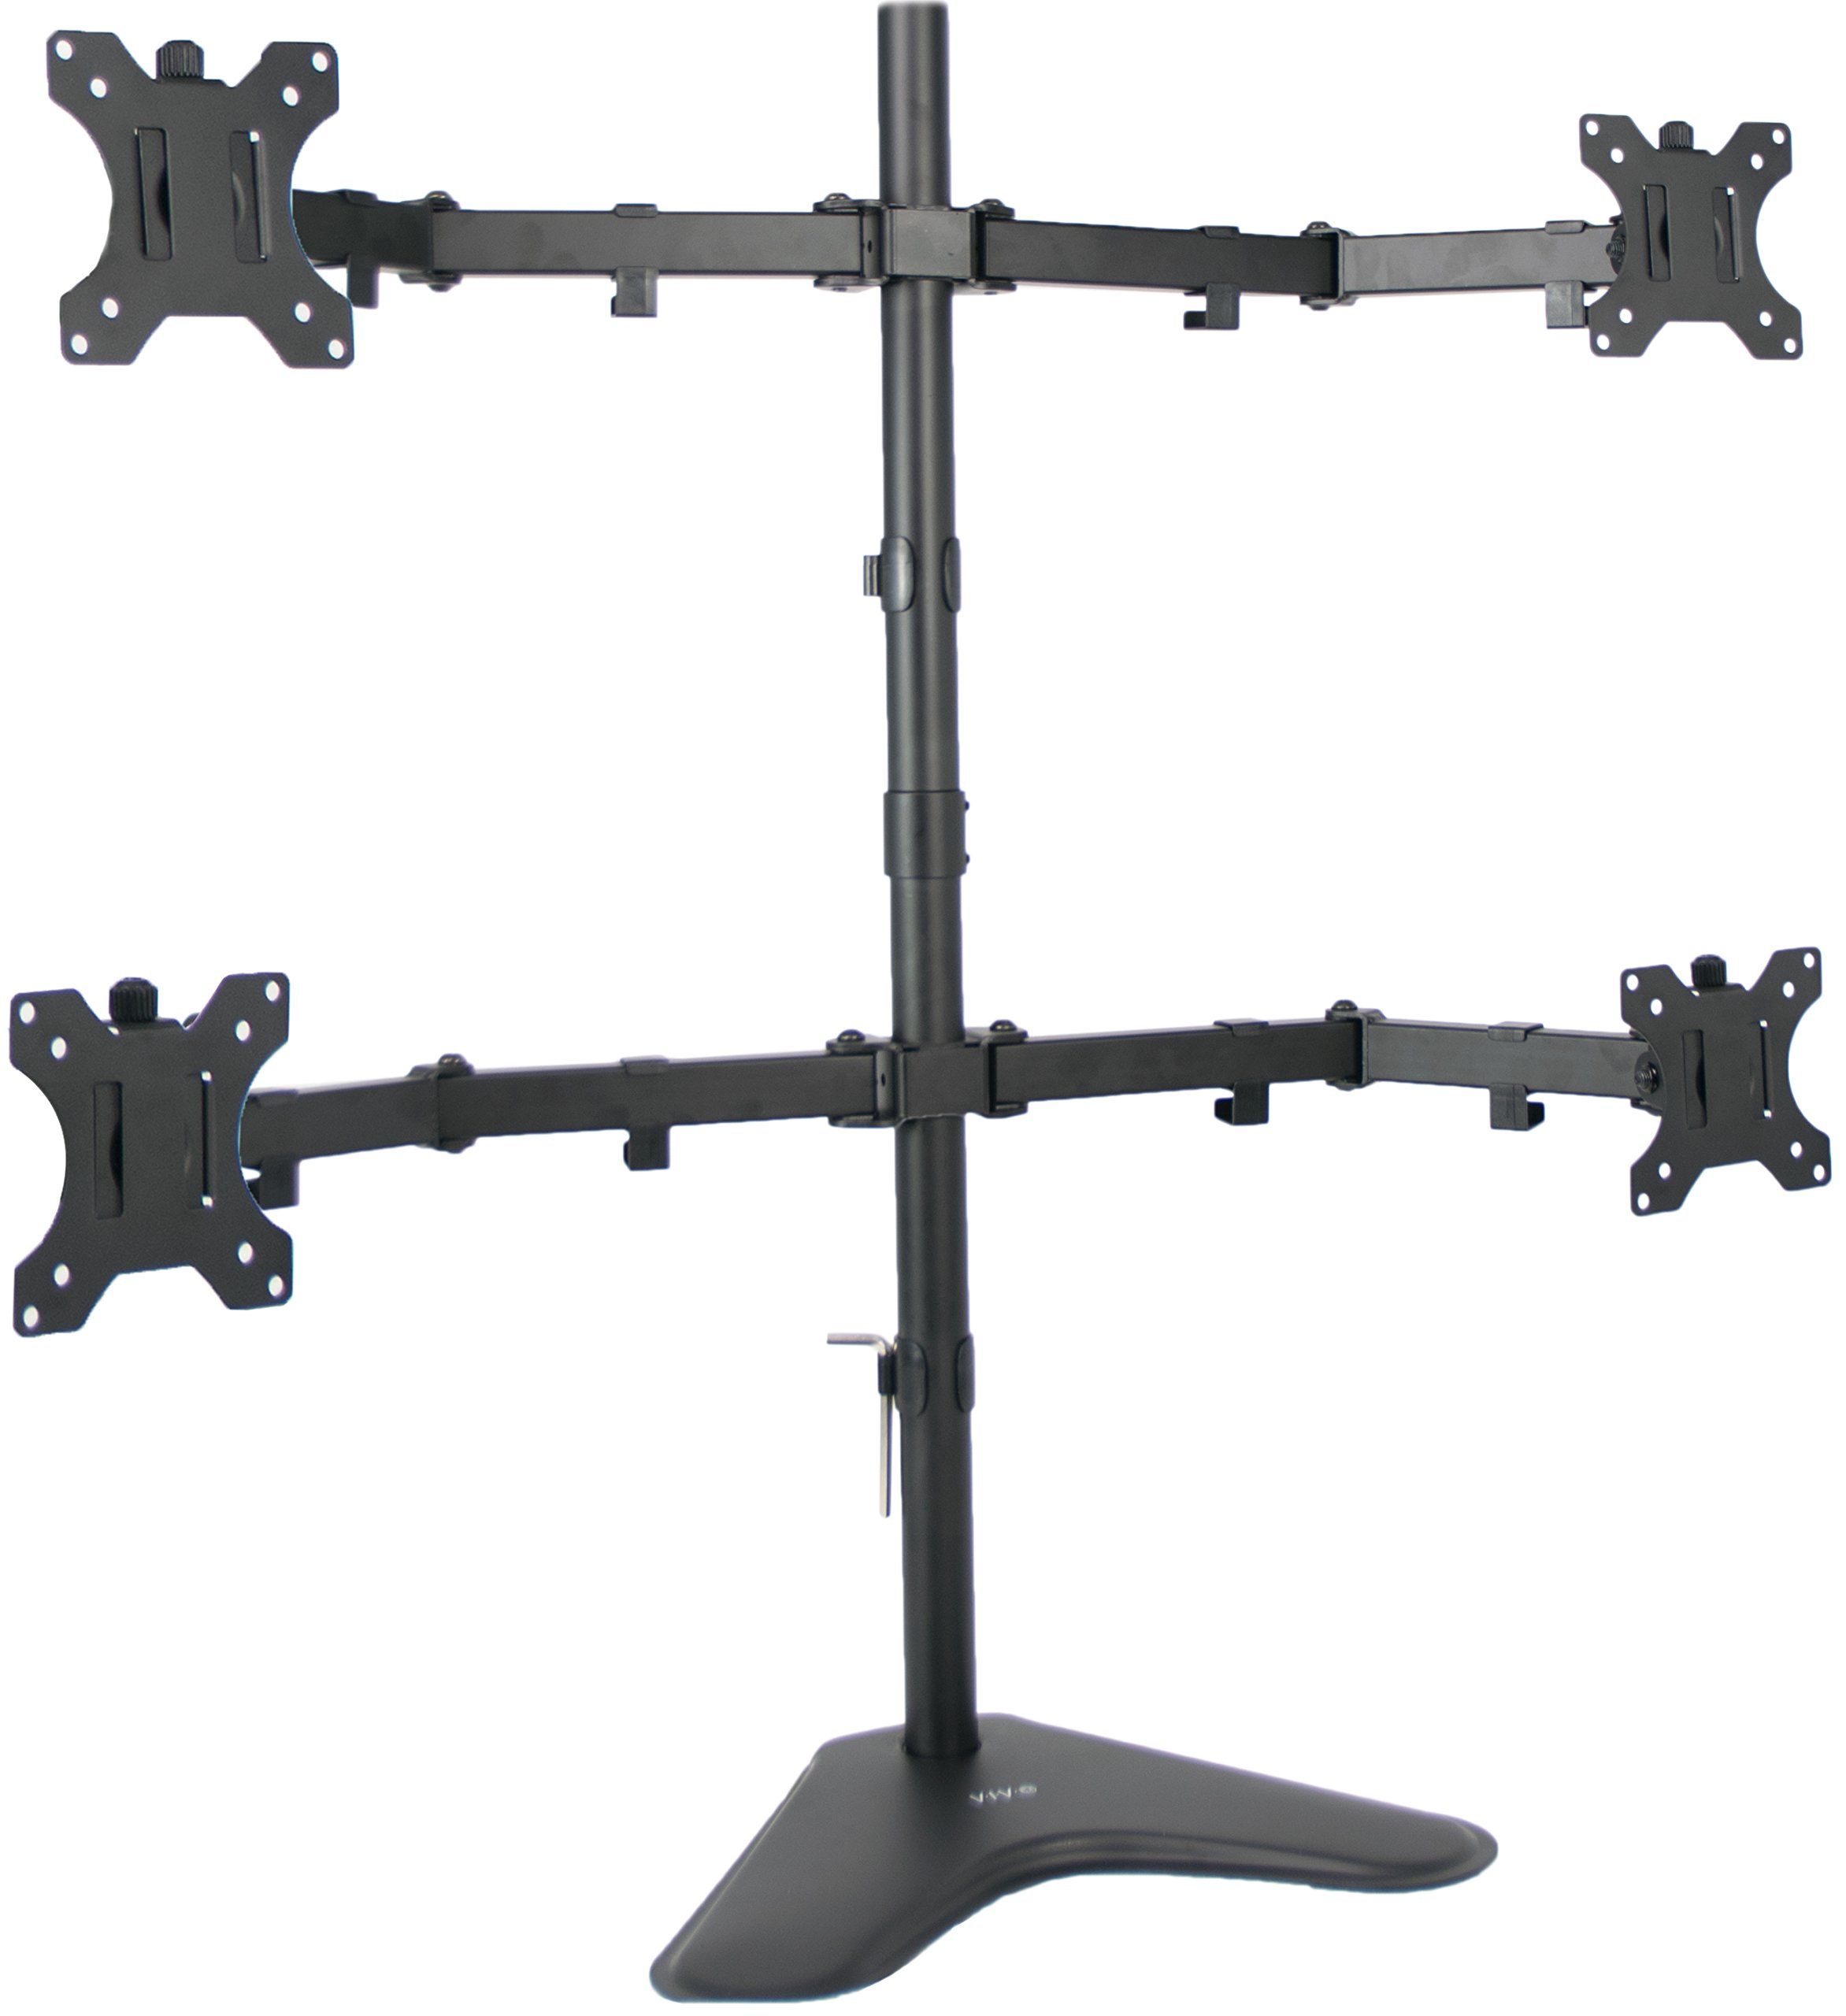 VIVO Quad LCD Computer Monitor Mount Free Standing Heavy Duty Desk Stand, Fully Adjustable, Holds 4 Screens up to 30 inches STAND-V004F